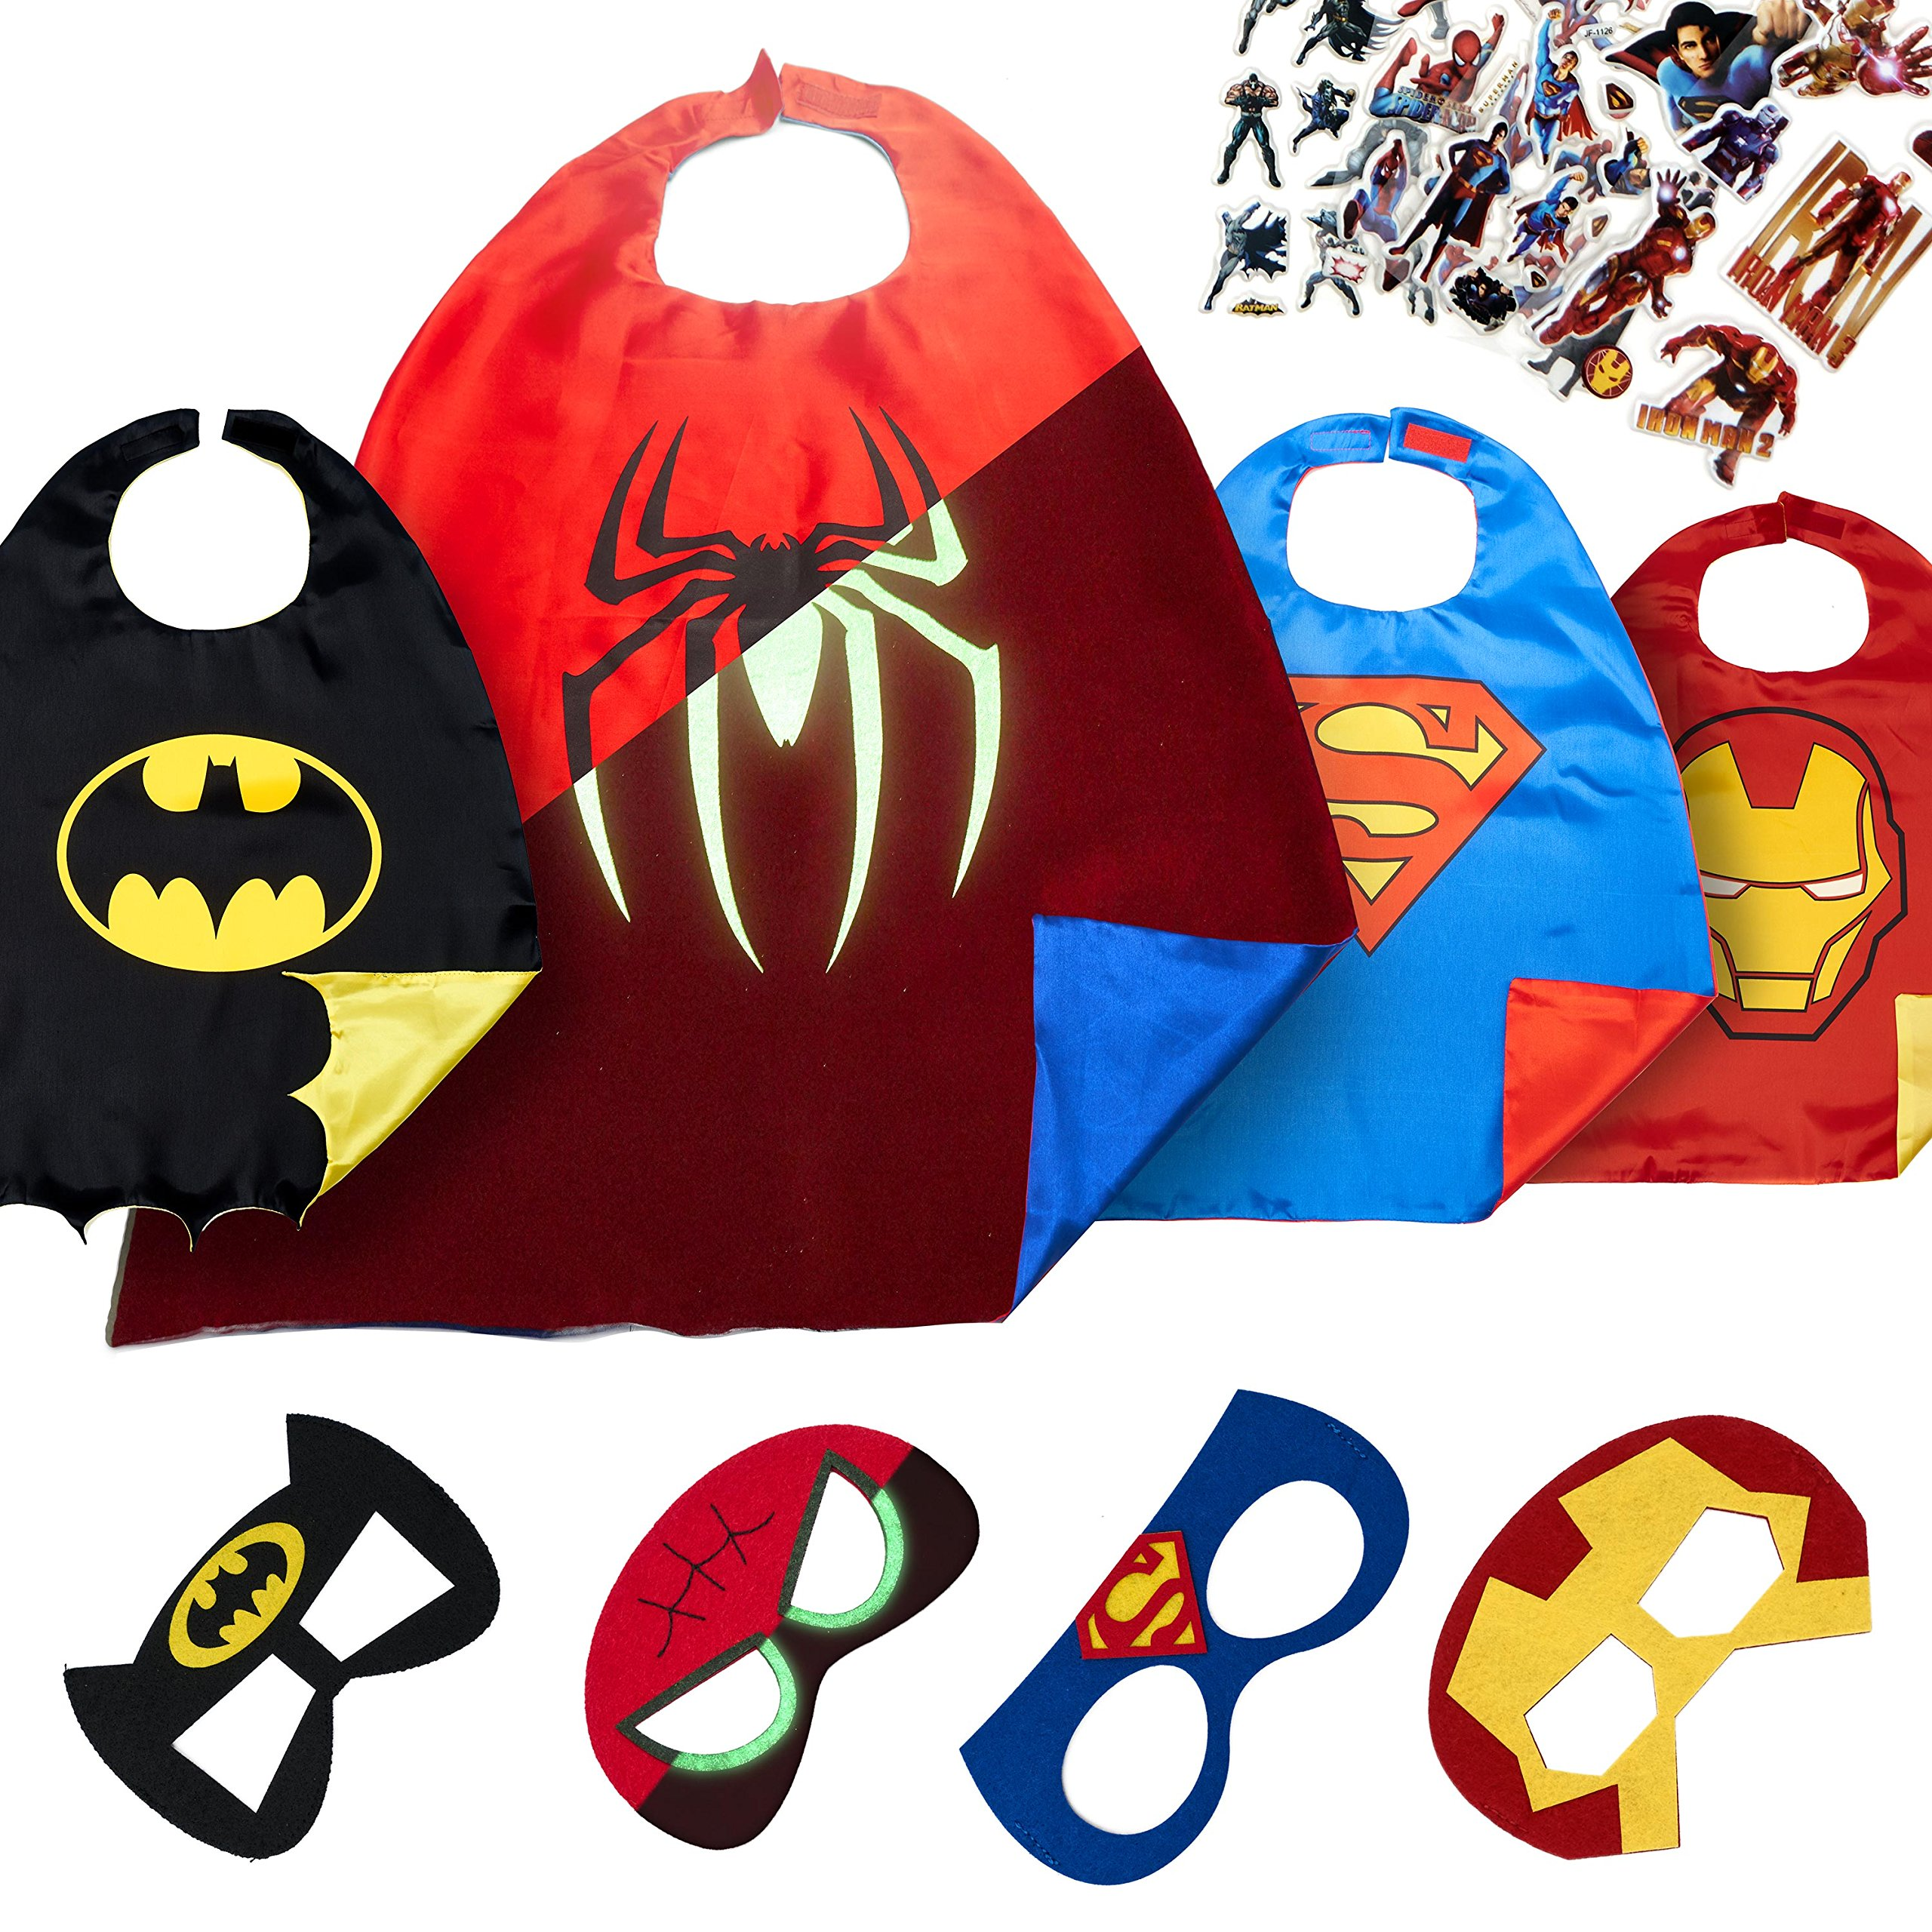 4 Superhero Capes for Kids - Super Hero Toys & Halloween Costumes - Birthday Party Supplies (Boys 3)